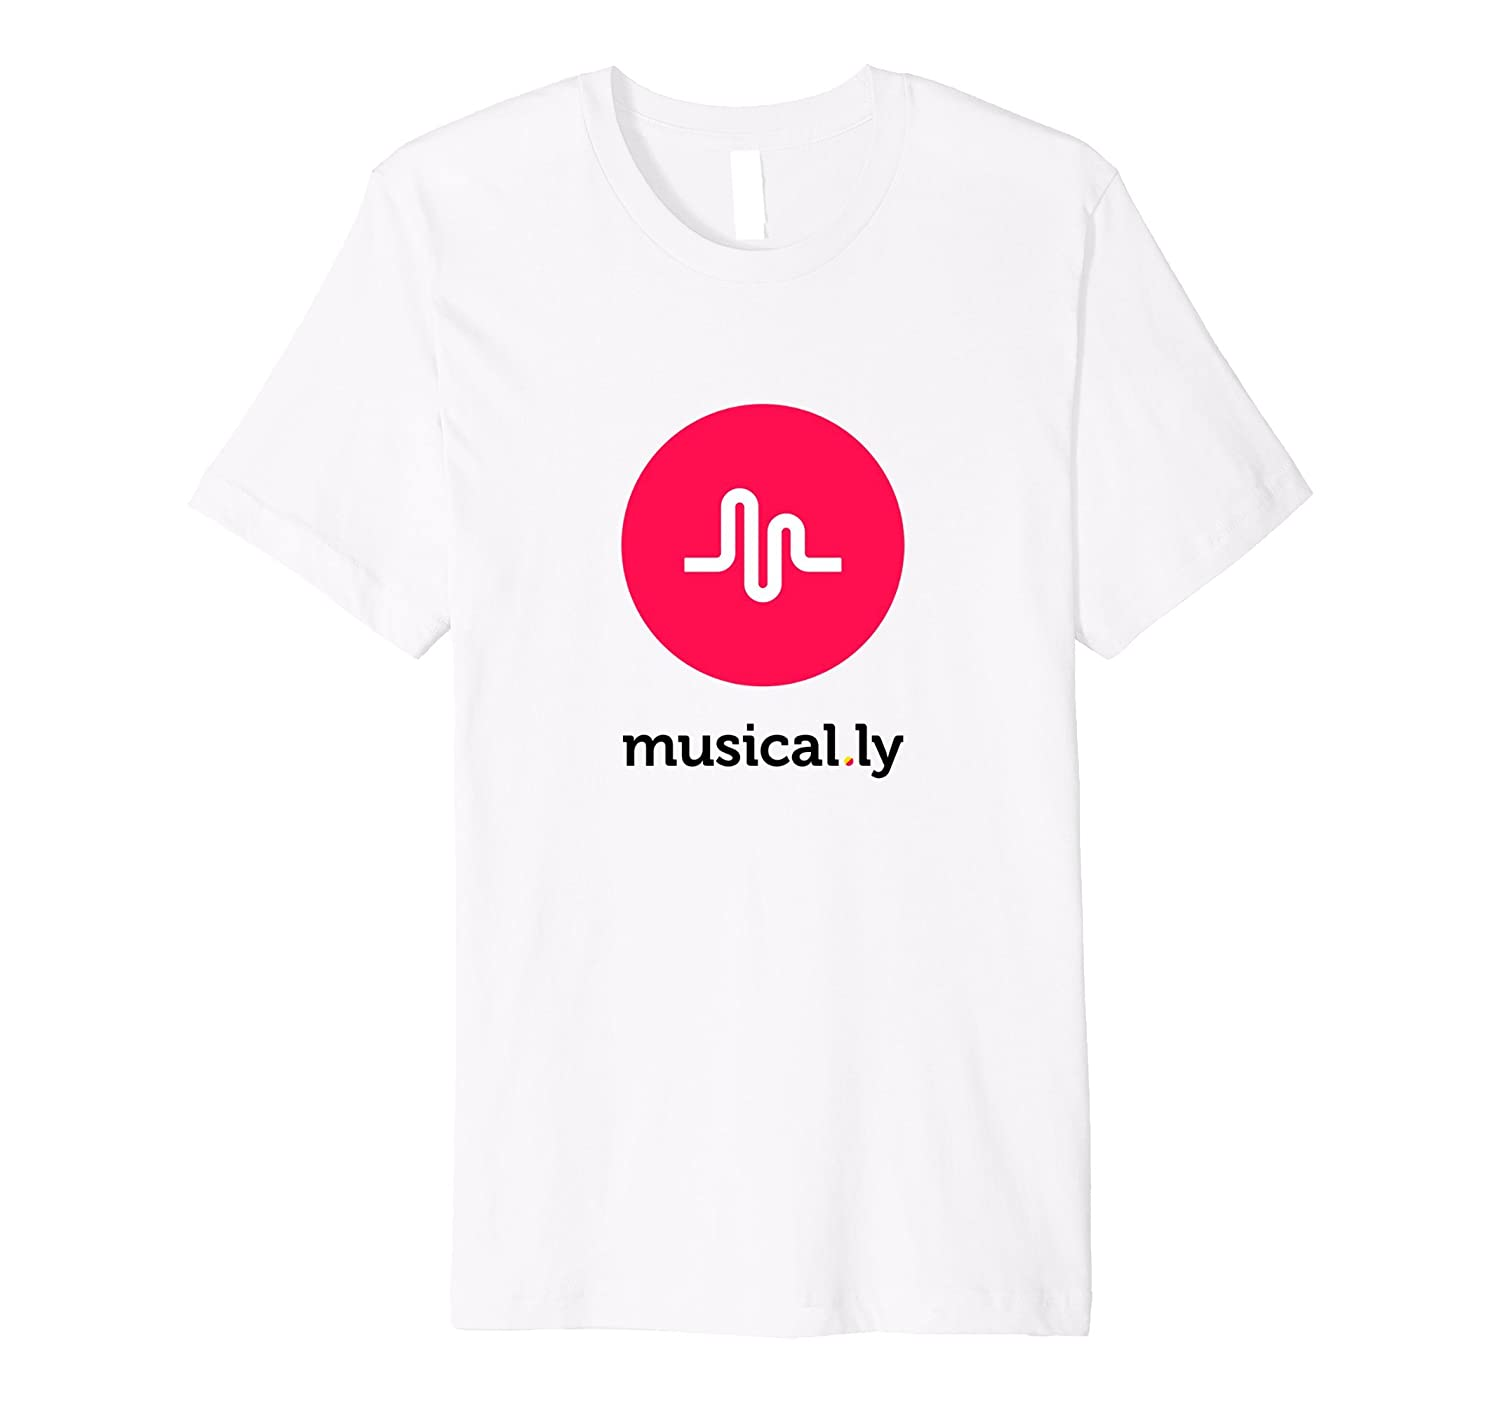 musically T-Shirt White - Fitted Cut-CD